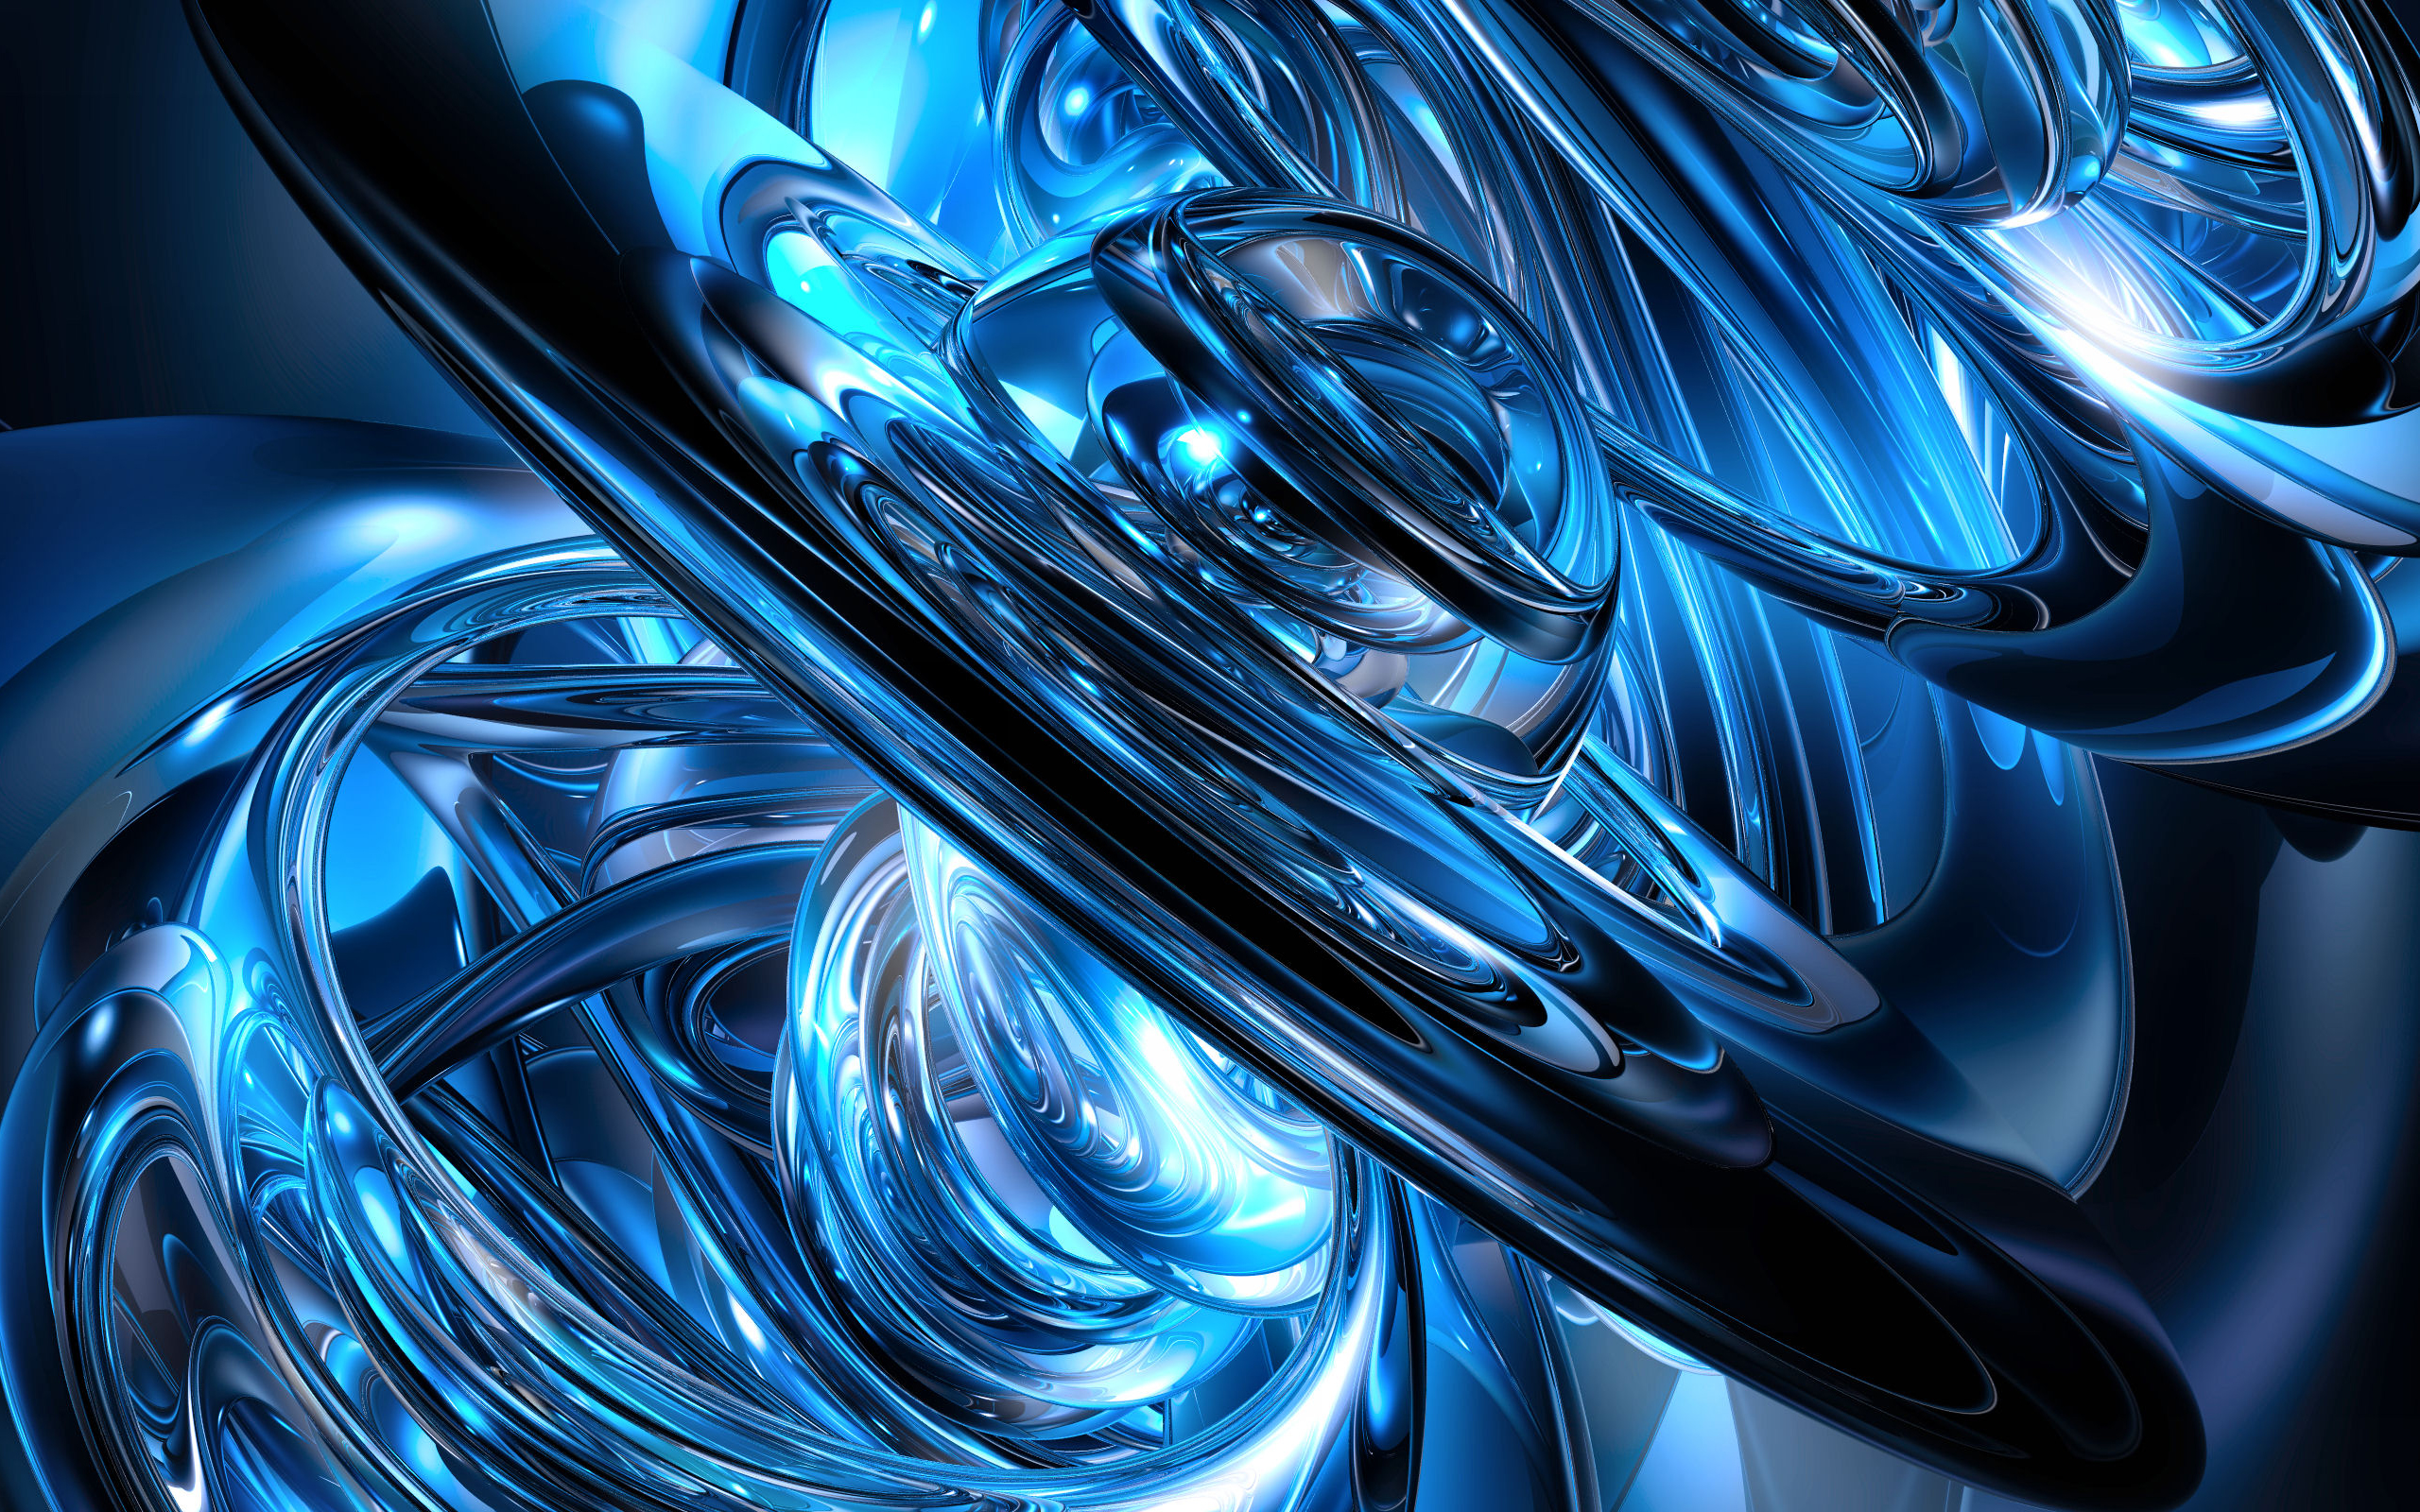 blue full hd wallpaper and background image | 2560x1600 | id:362183